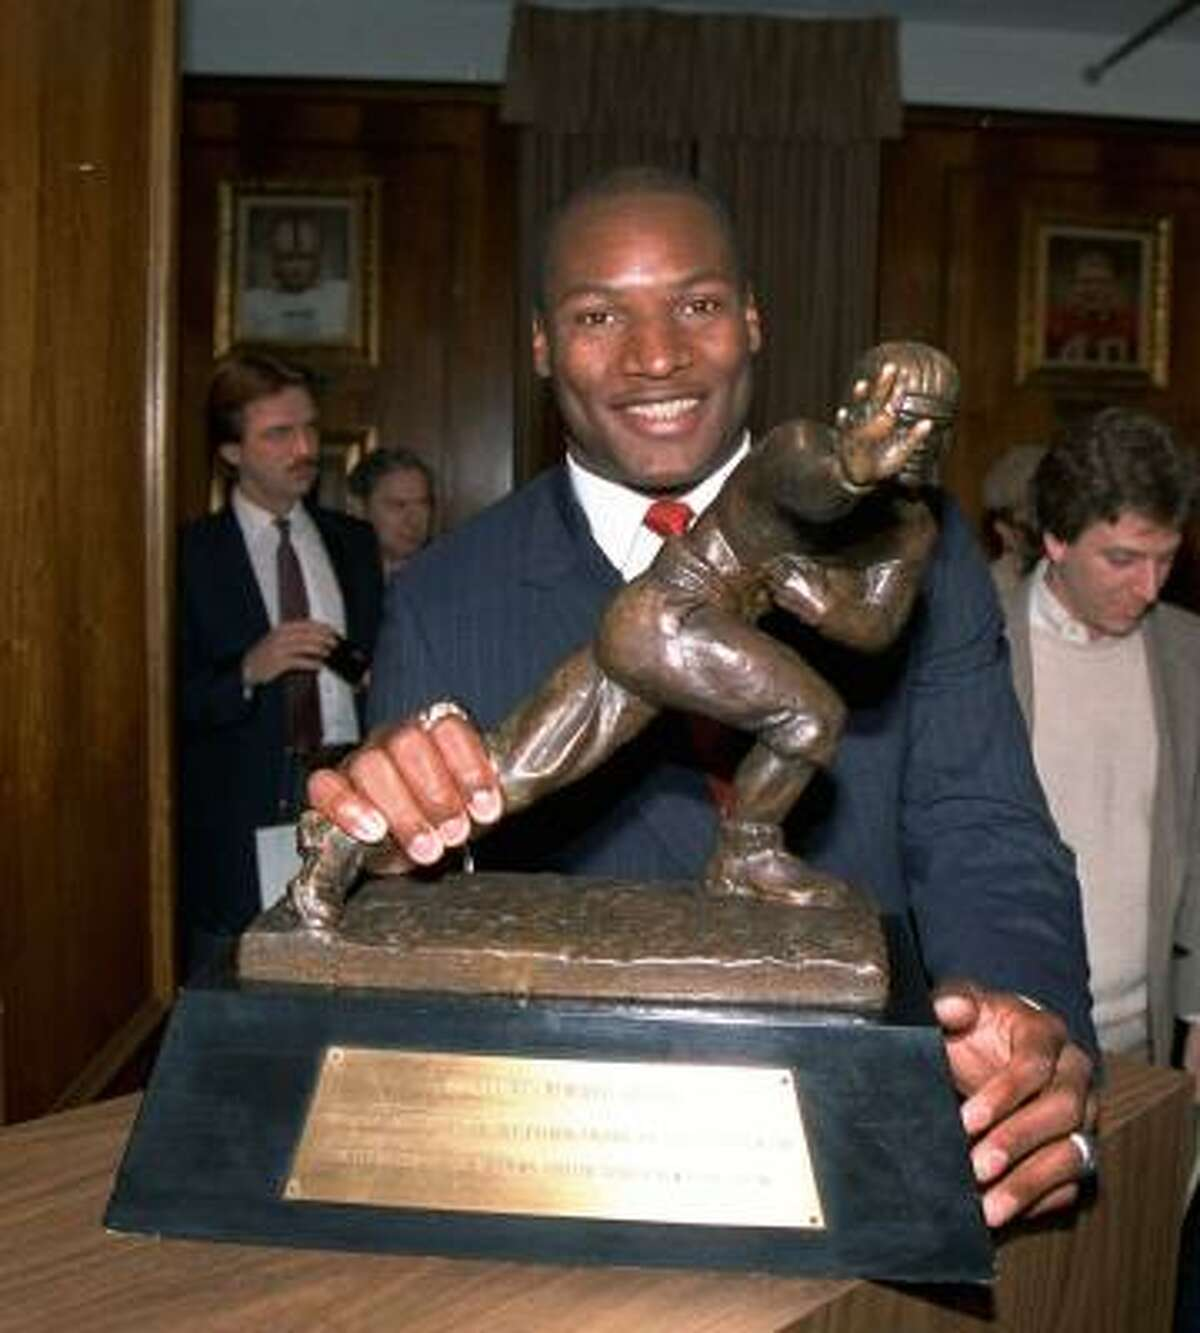 Bo Jackson Baseball: MLB OF, 1986-1994 Football: NFL RB, 1987-1990 Summary: Jackson won the Heisman in 1985 at Auburn and was the top pick by the Bucs in the 1986 NFL draft, but he signed with the Kansas City Royals instead. He was the MLB All-Star Game MVP in 1989 and earned a Pro Bowl selection with the Raiders the following year. A football hip injury suffered in 1991 plagued the rest of his short career.